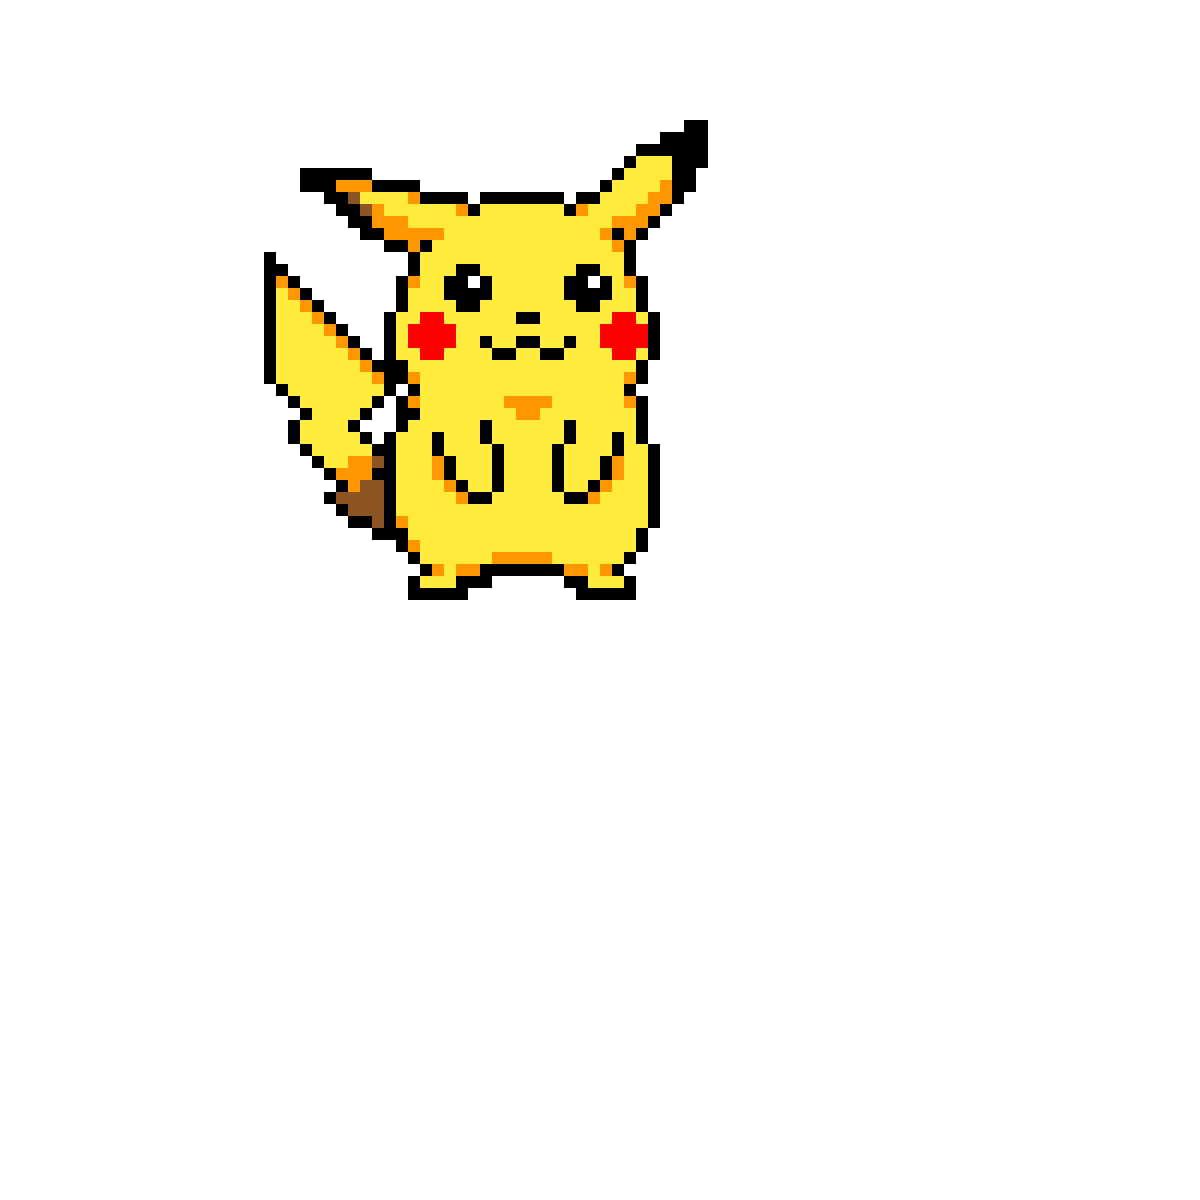 Pissed off pikachu